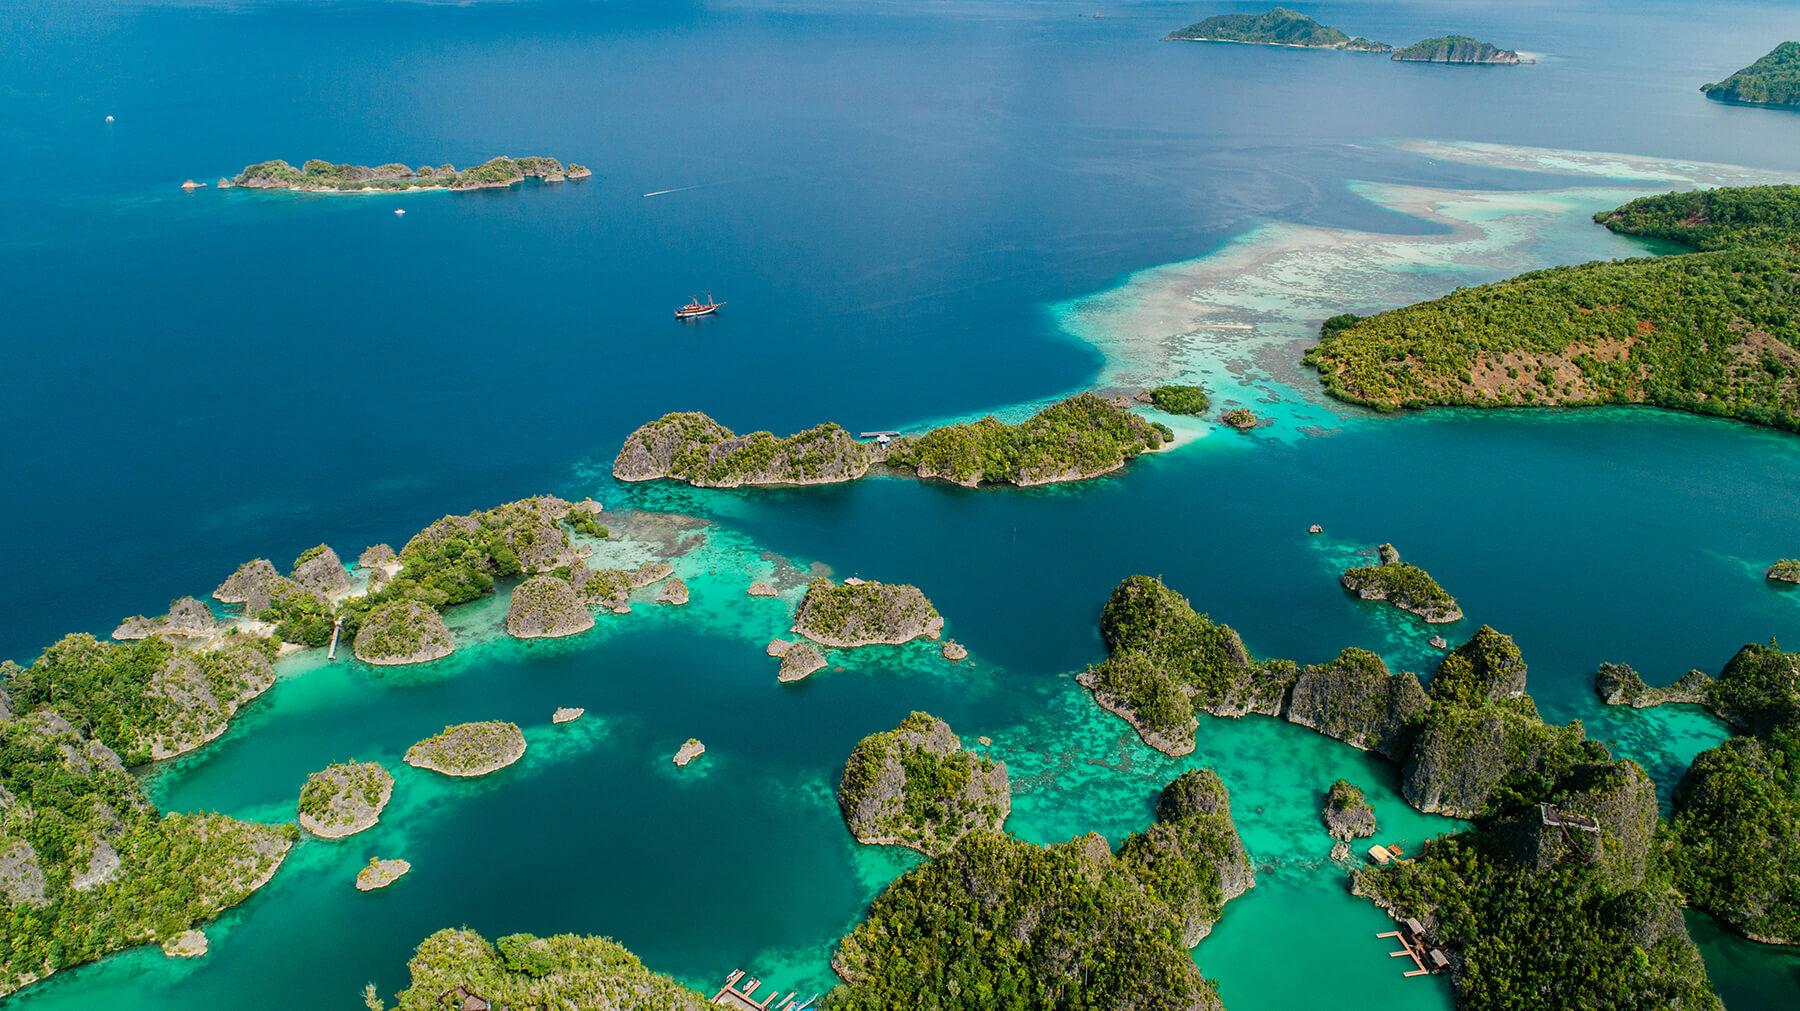 Trips to Raja Ampat, Indonesia are likely to resume in the fall.